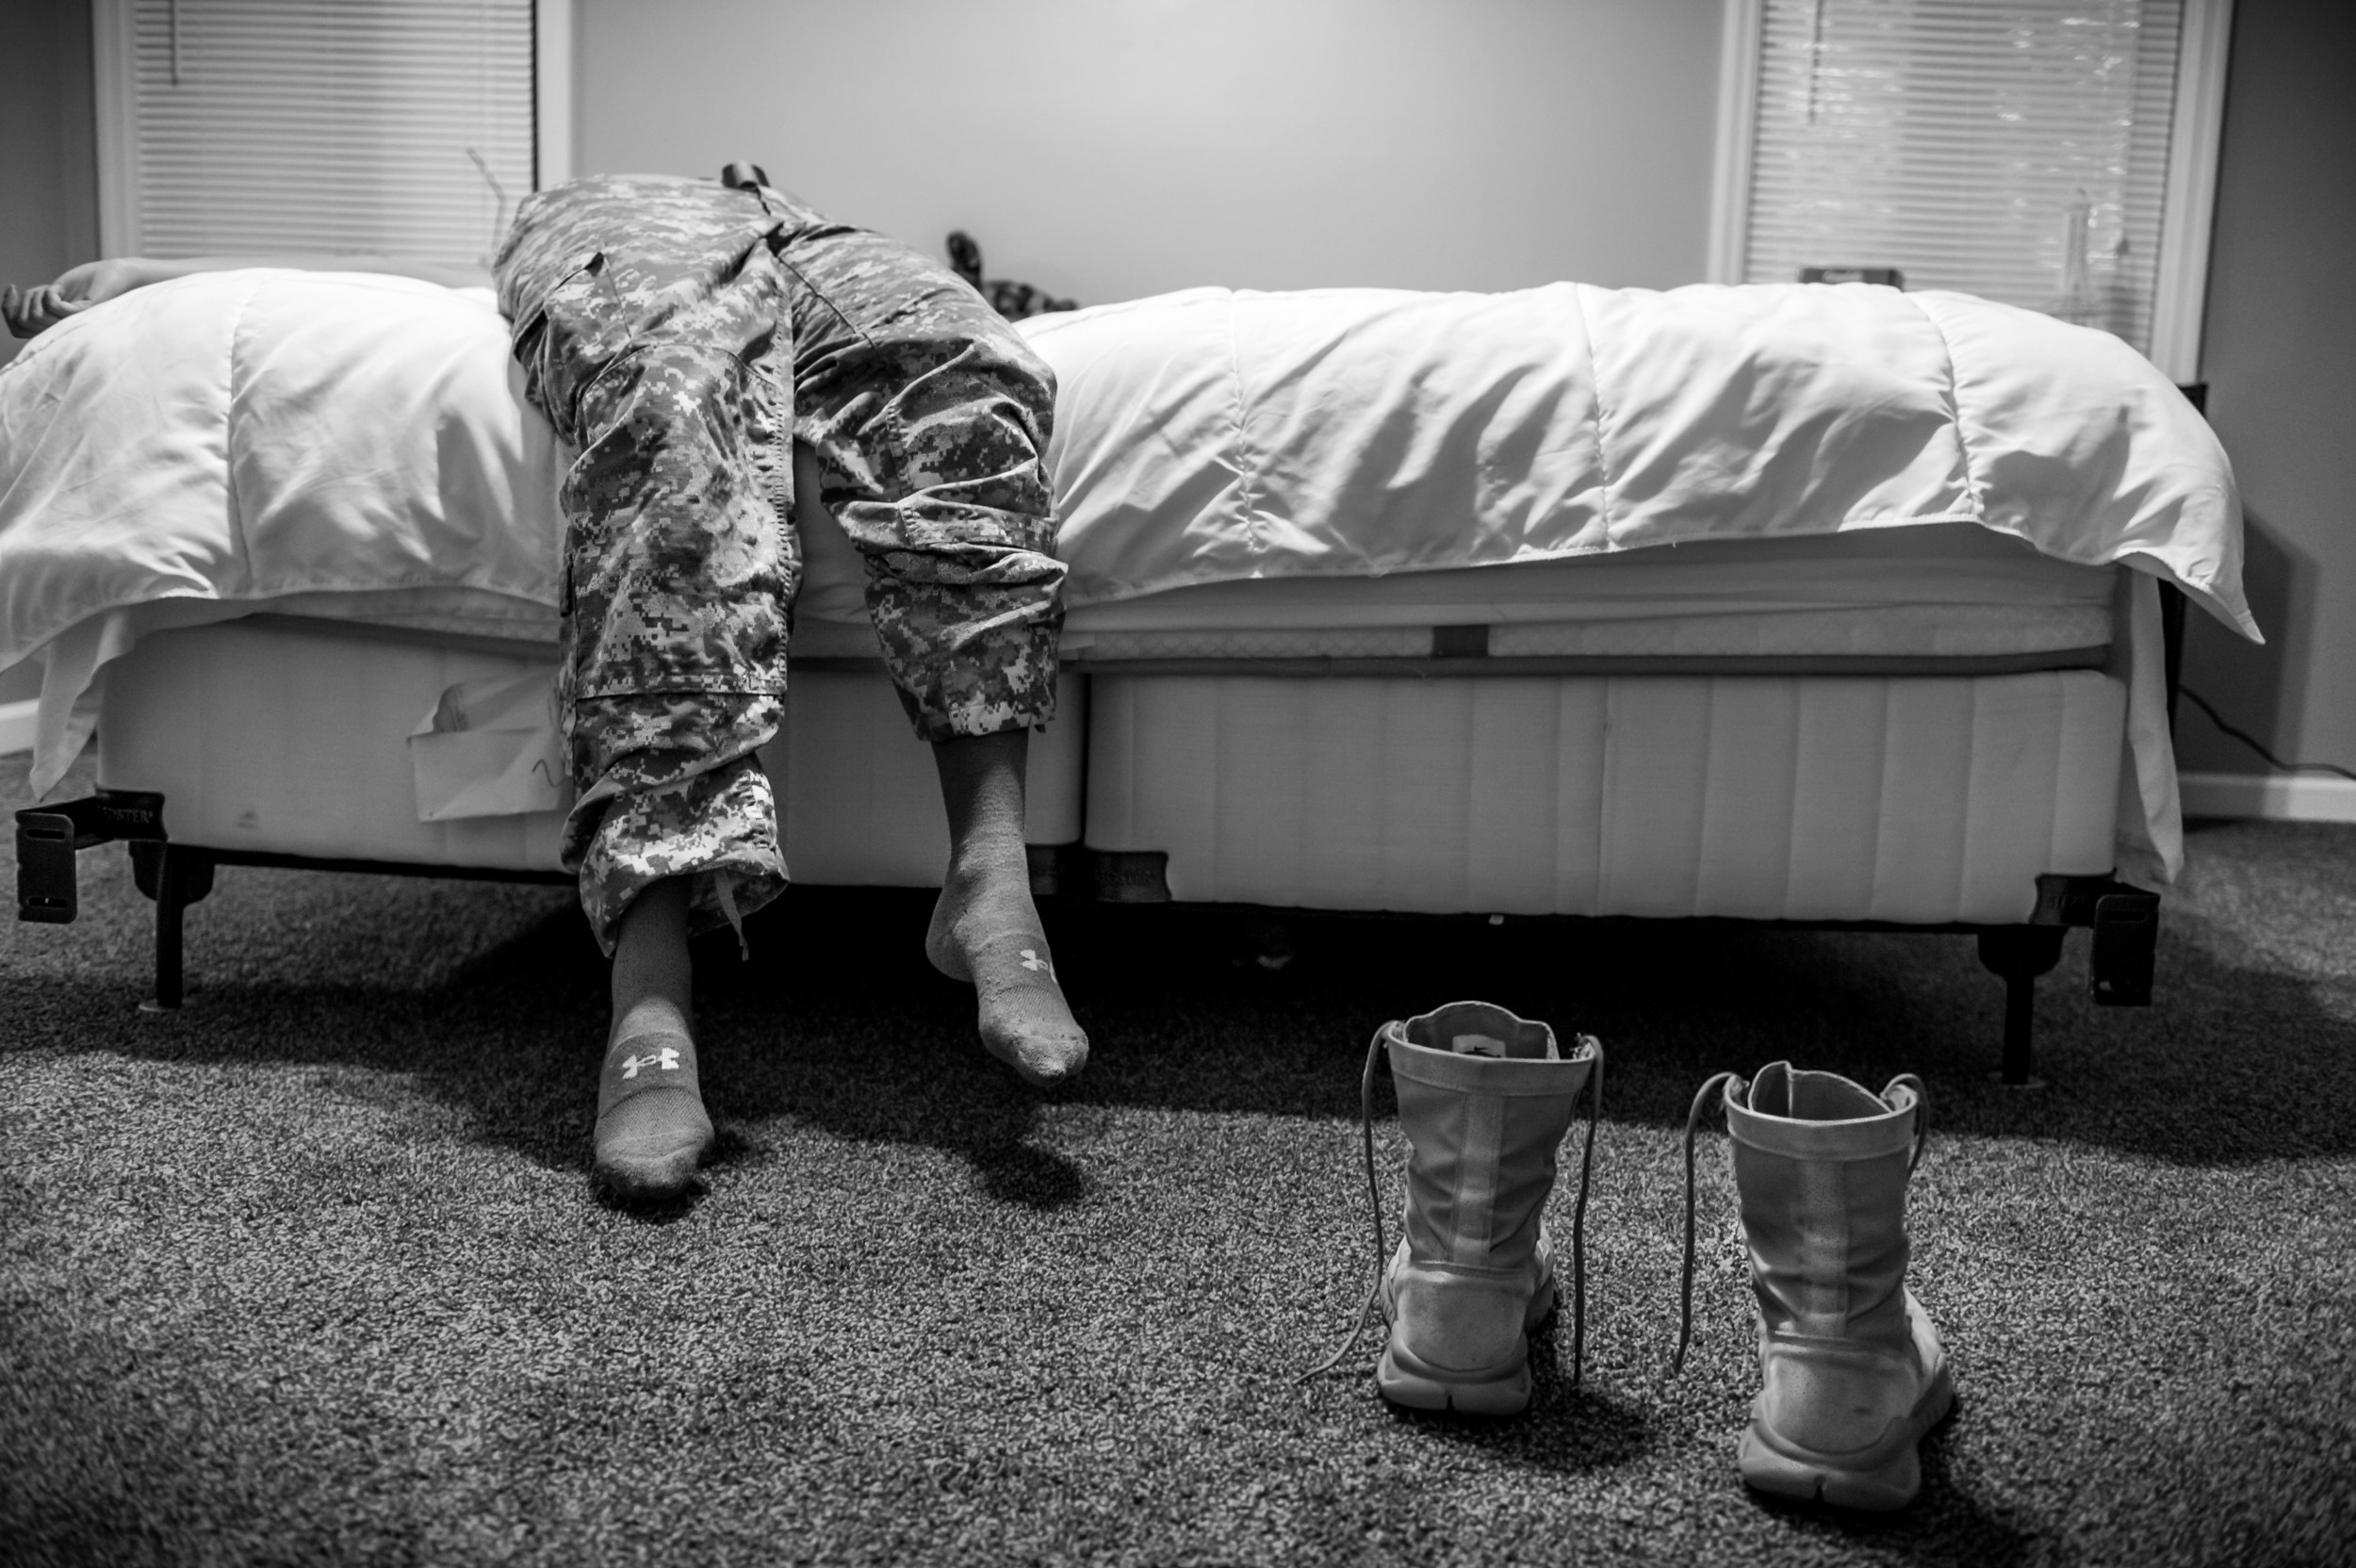 The War Within: US Army Pfc. Natasha Schuette, 21, was sexually assaulted by her drill sergeant during basic training. © Mary F. Calvert  / ZUMAPRESS.com